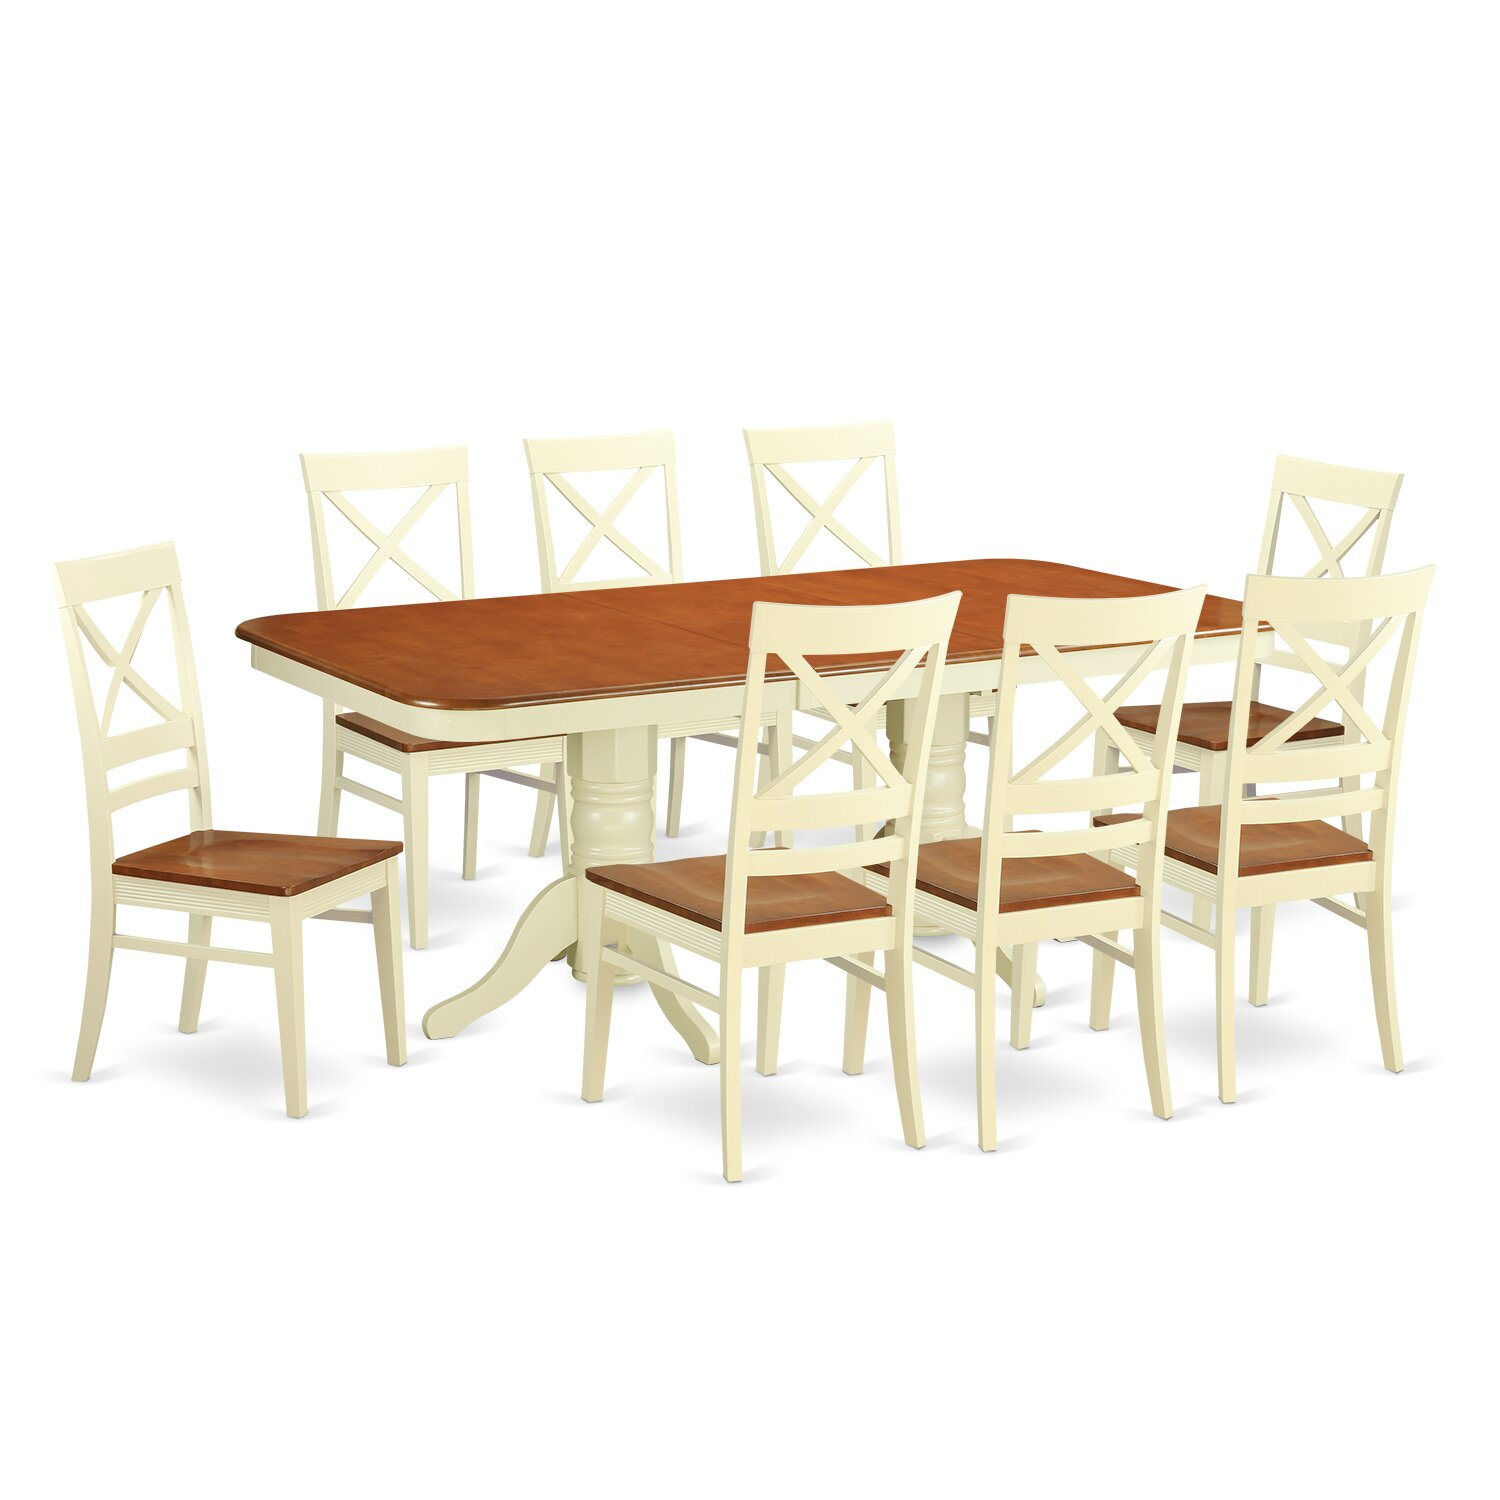 Wooden importers napoleon 9 piece dining set wayfair for Dining room furniture 9 piece